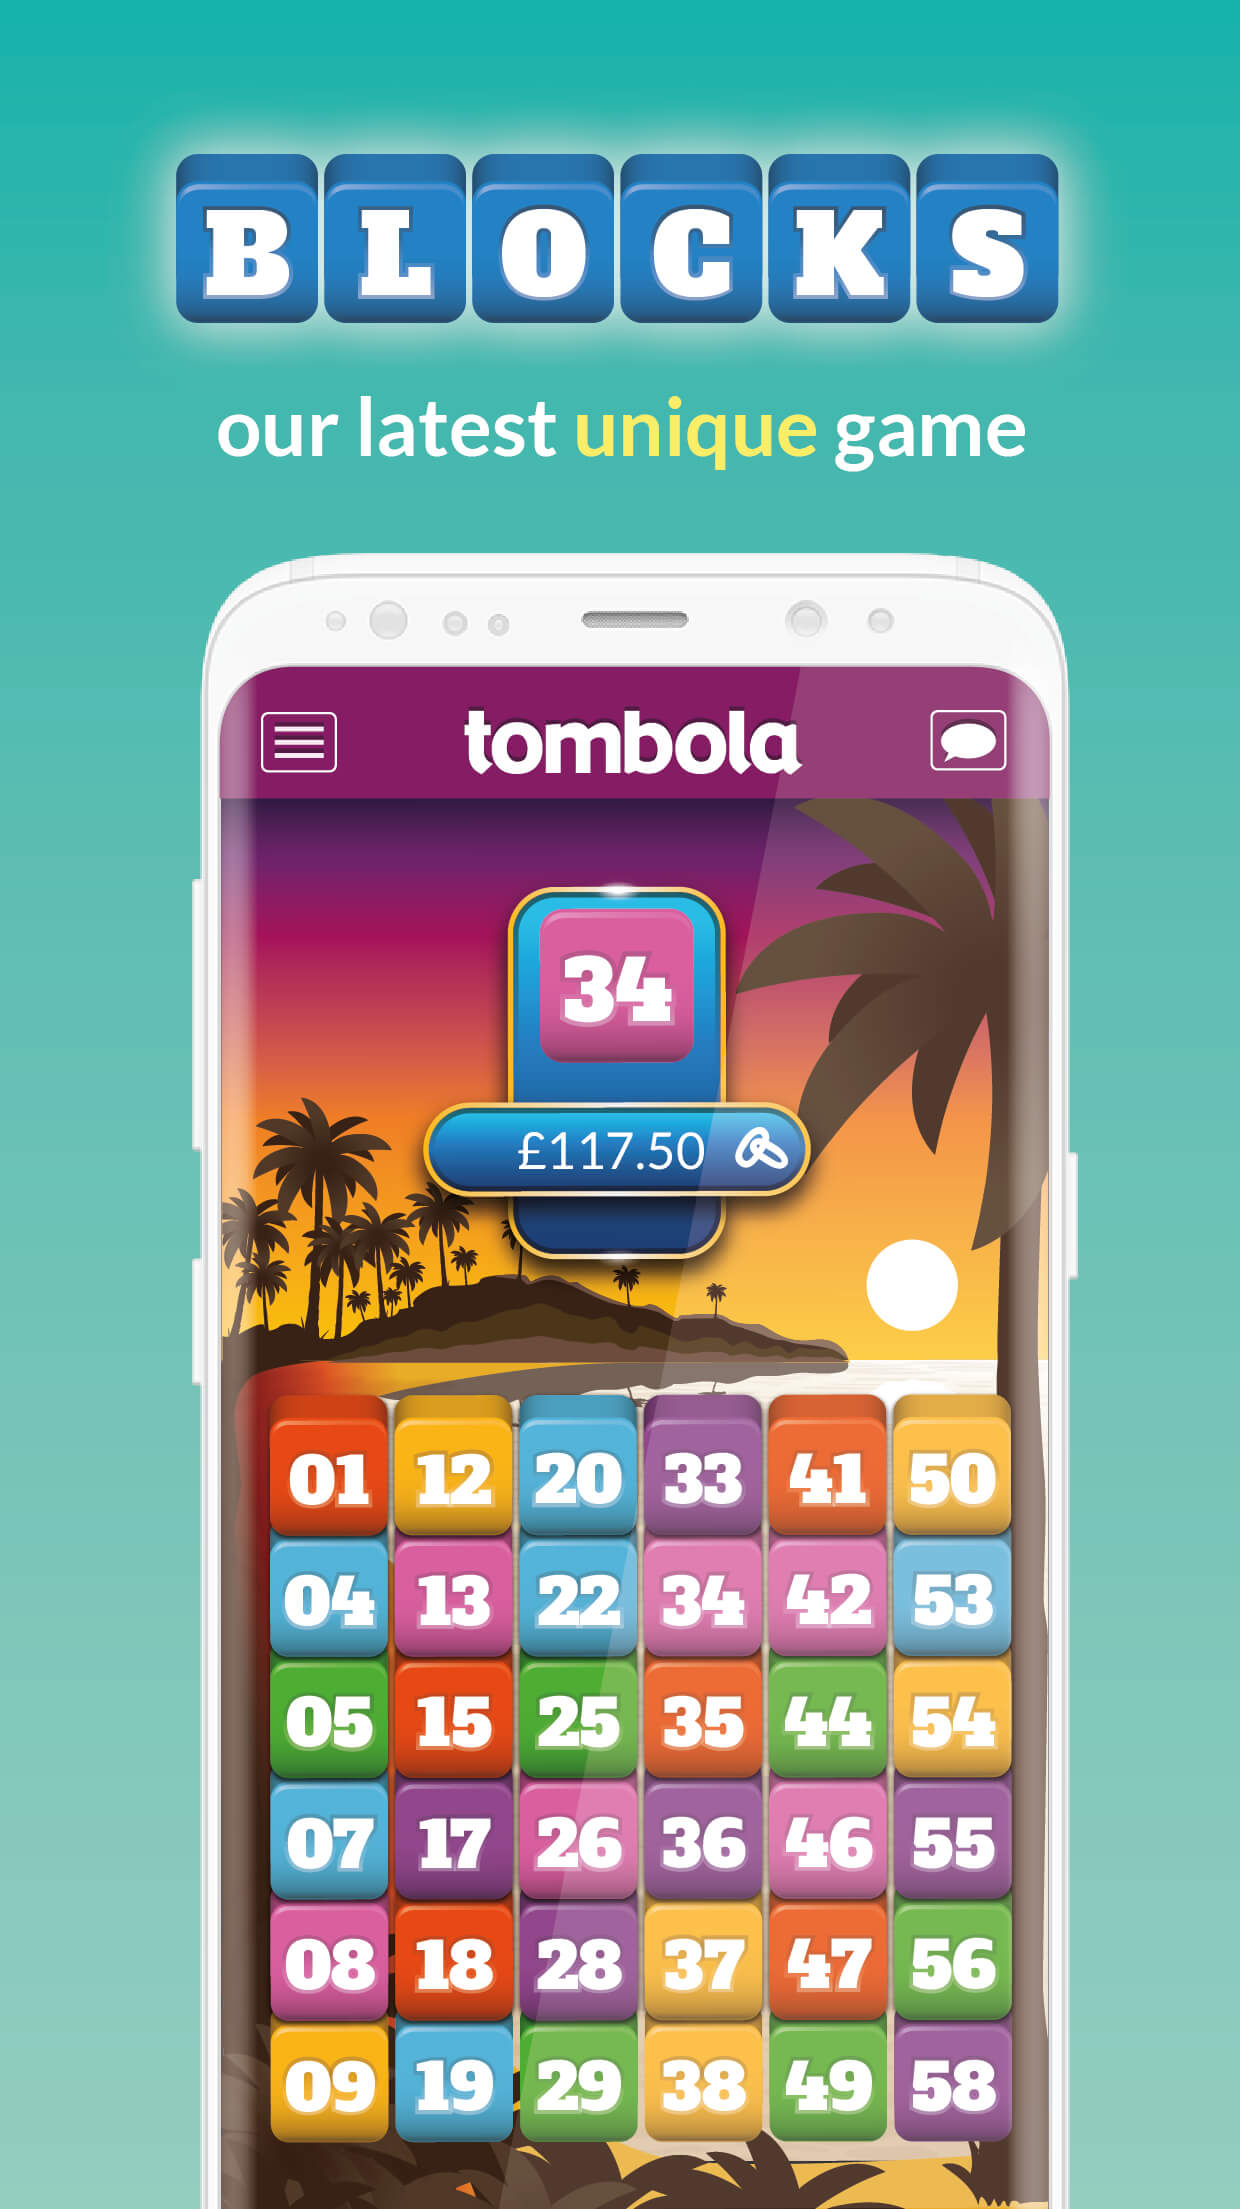 Tombola Co Uk Login >> Download tombola's Free Mobile & Tablet App on Android | tombola